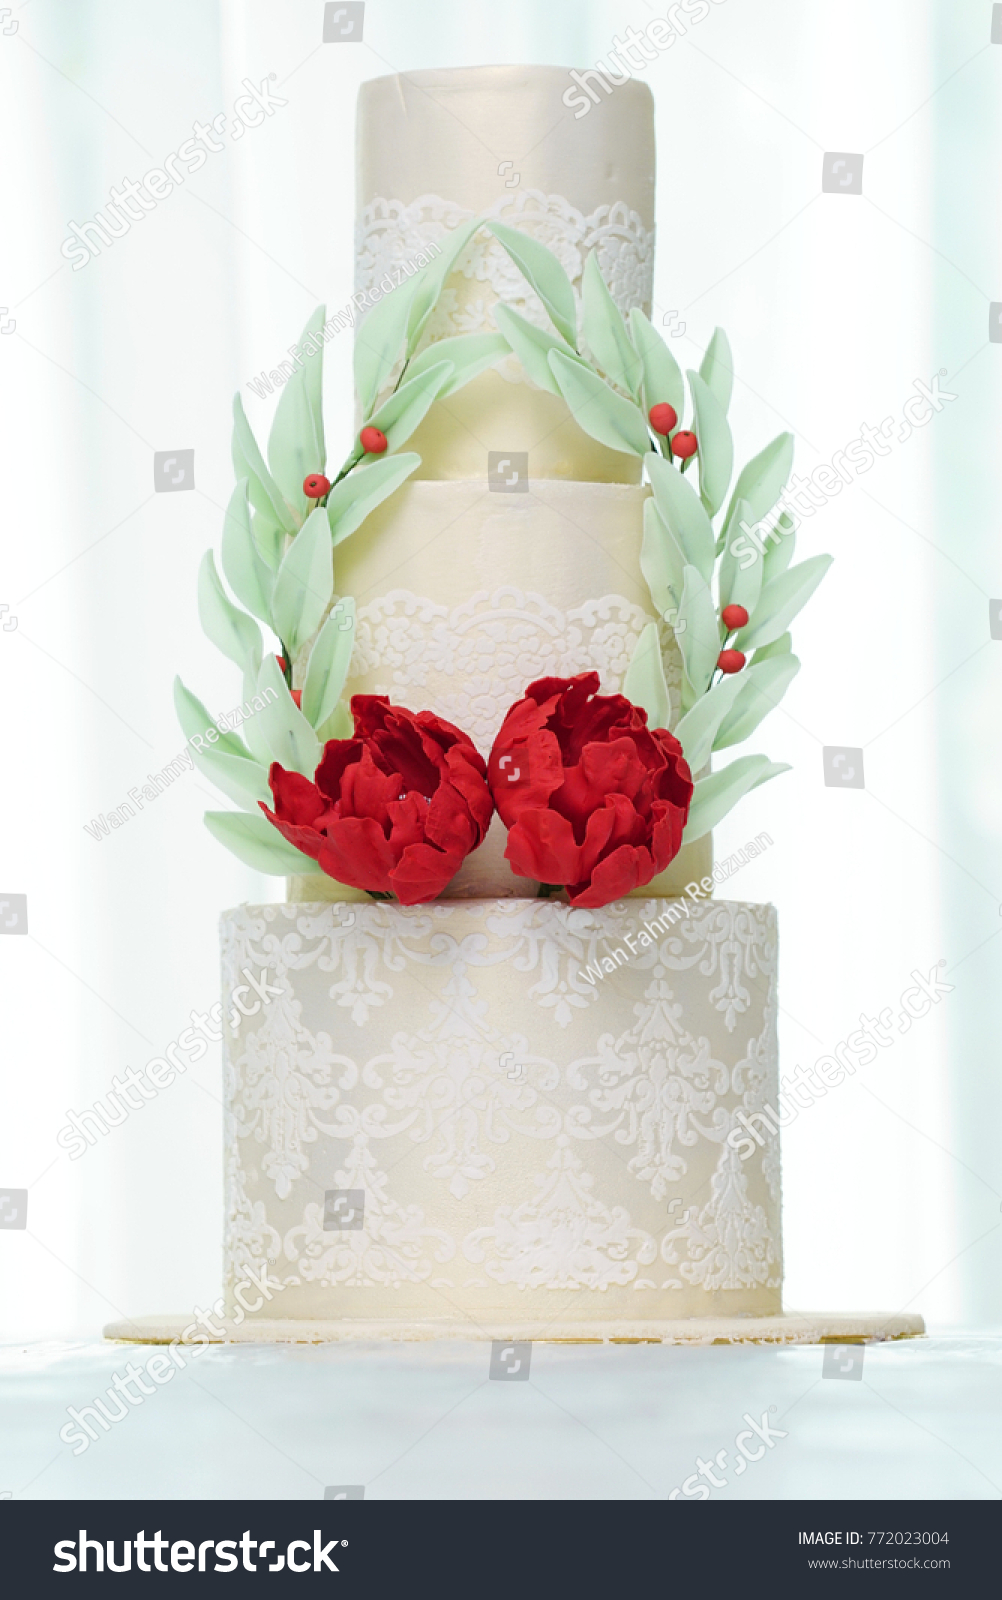 Three Tier Wedding Cakes Red Flowers Stock Photo (100% Legal ...